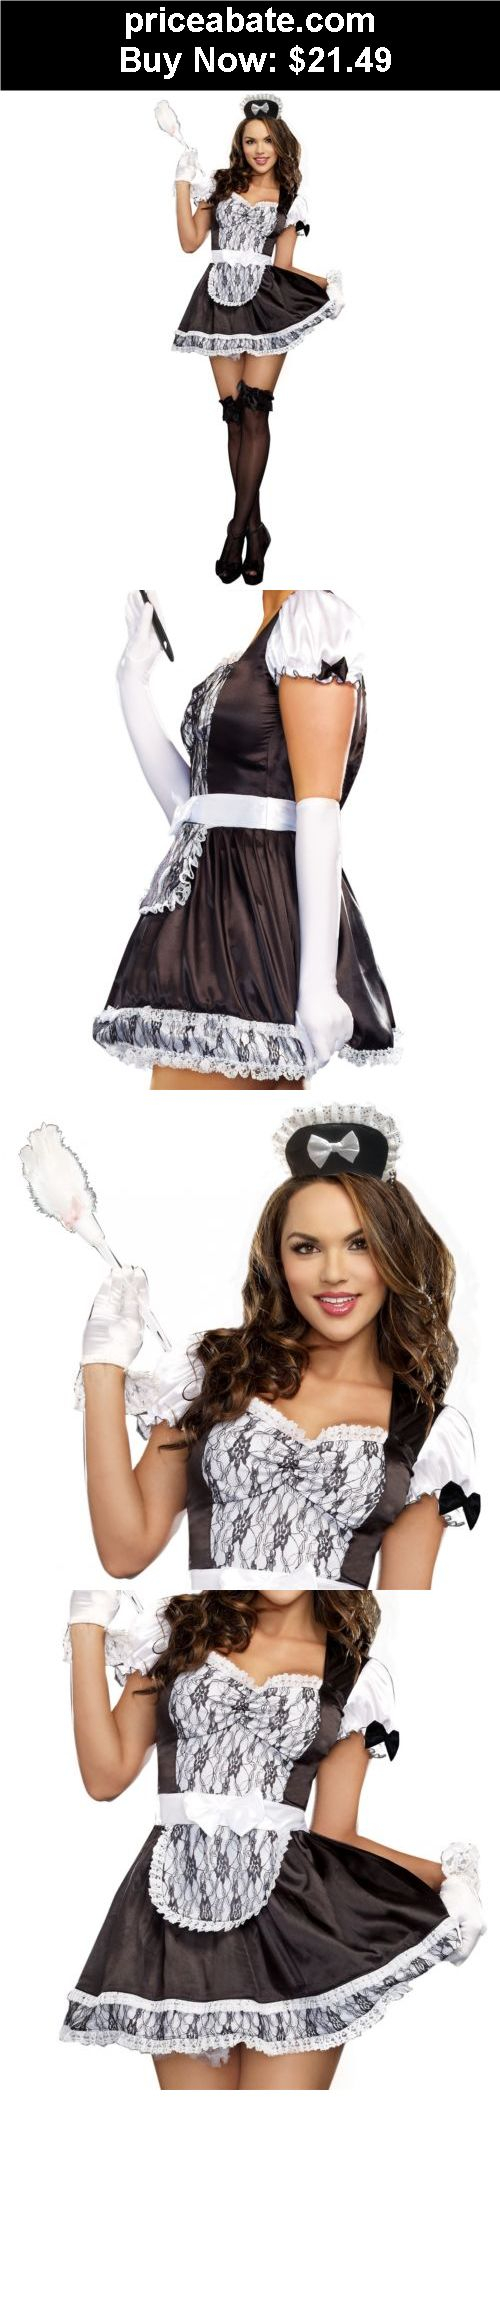 Women-Costumes: French Maid Costume Adult Halloween Fancy Dress - BUY IT NOW ONLY $21.49